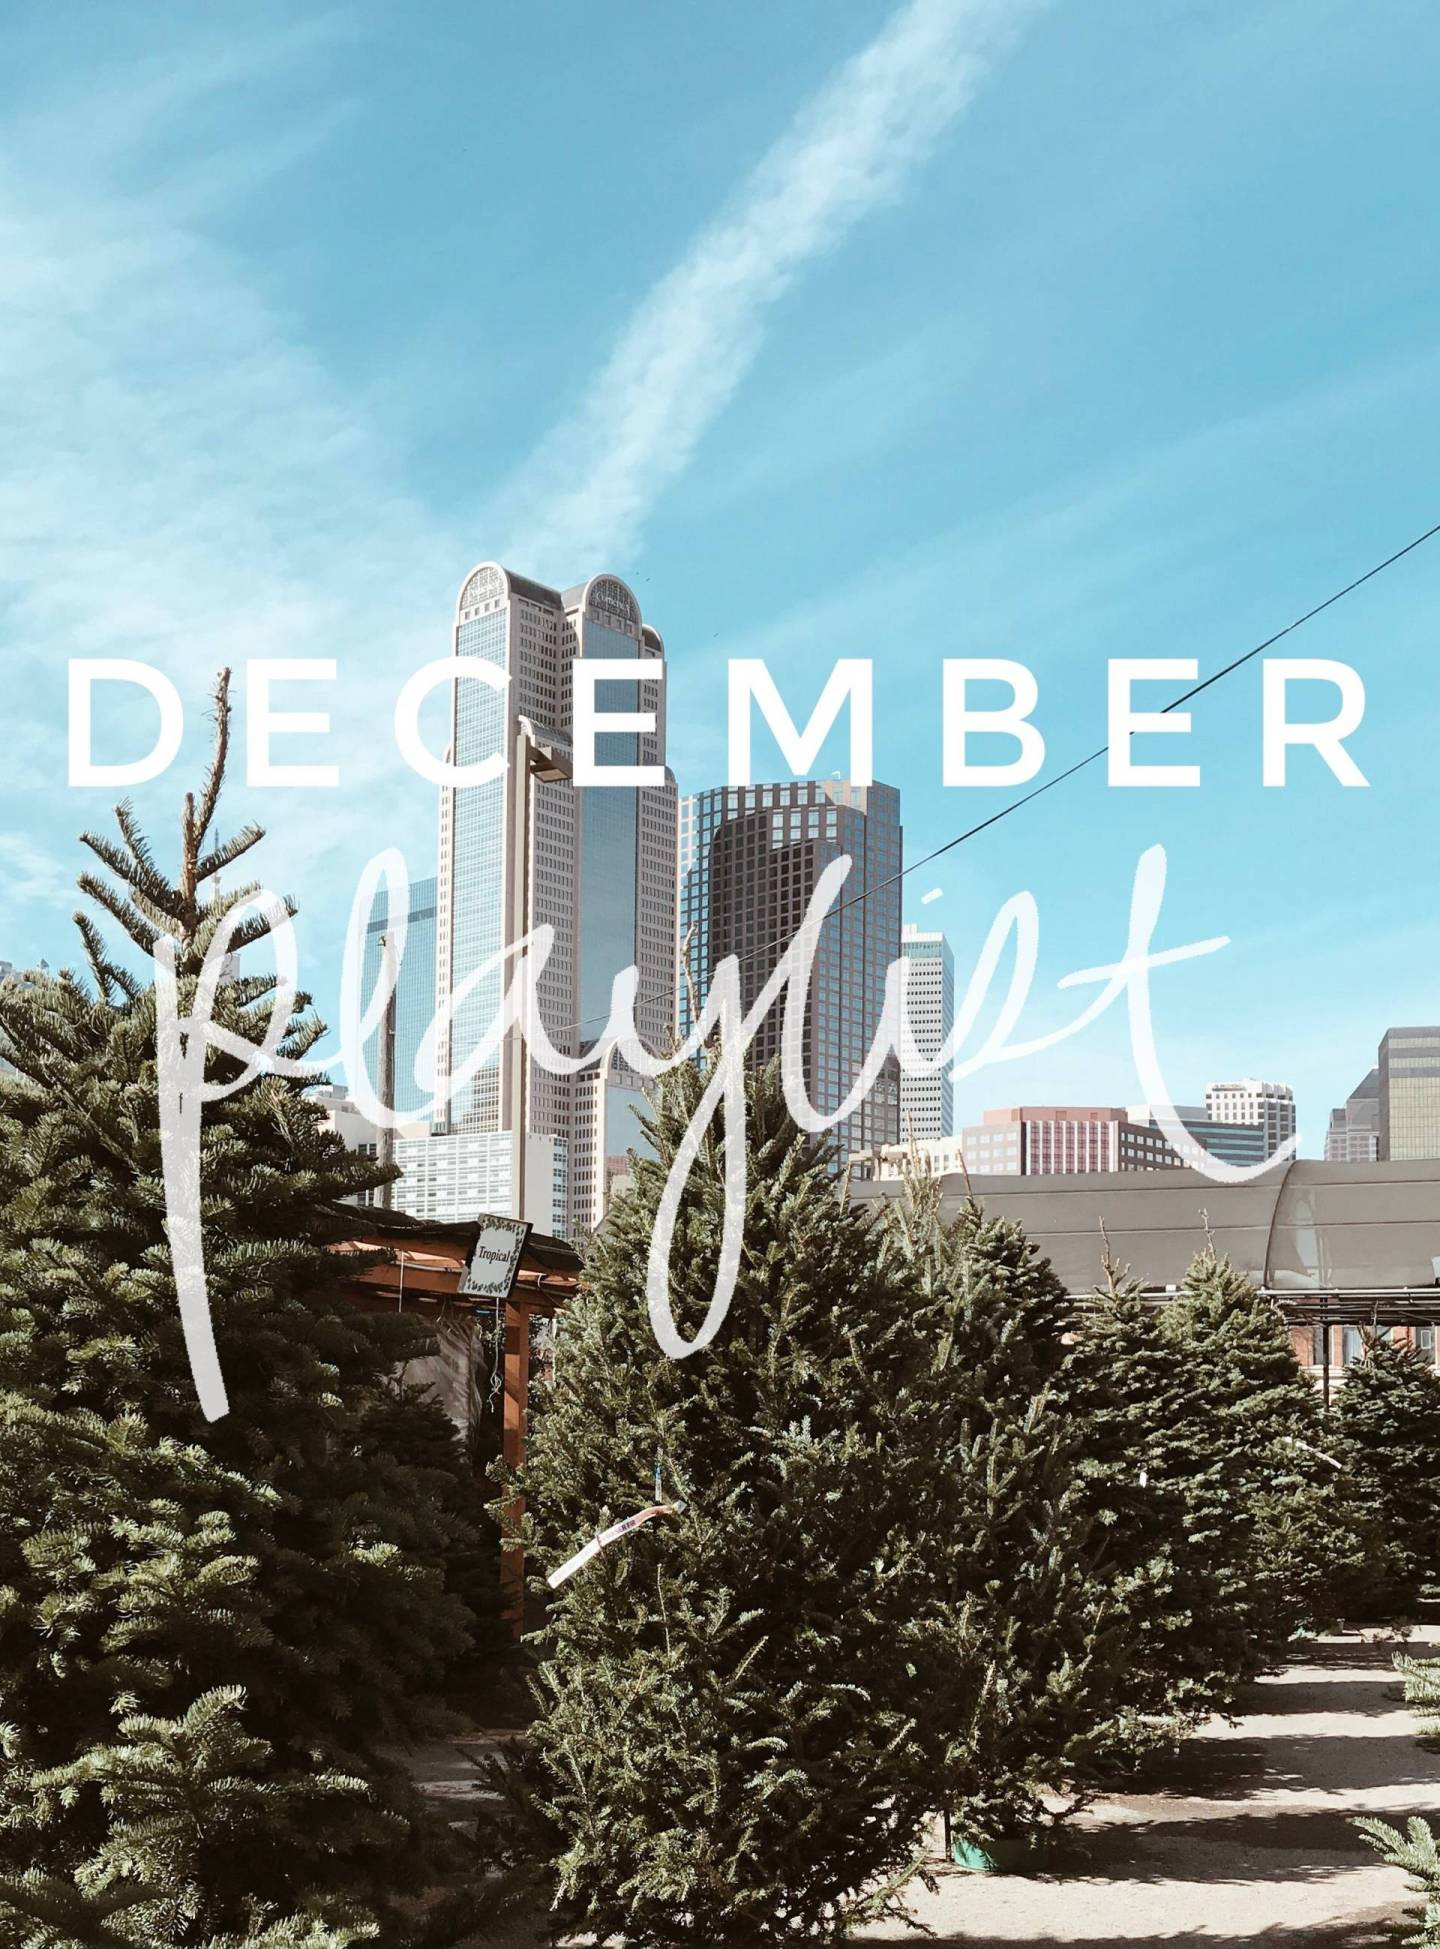 December Playlist – 10 Songs to Listen to This Christmas Season.